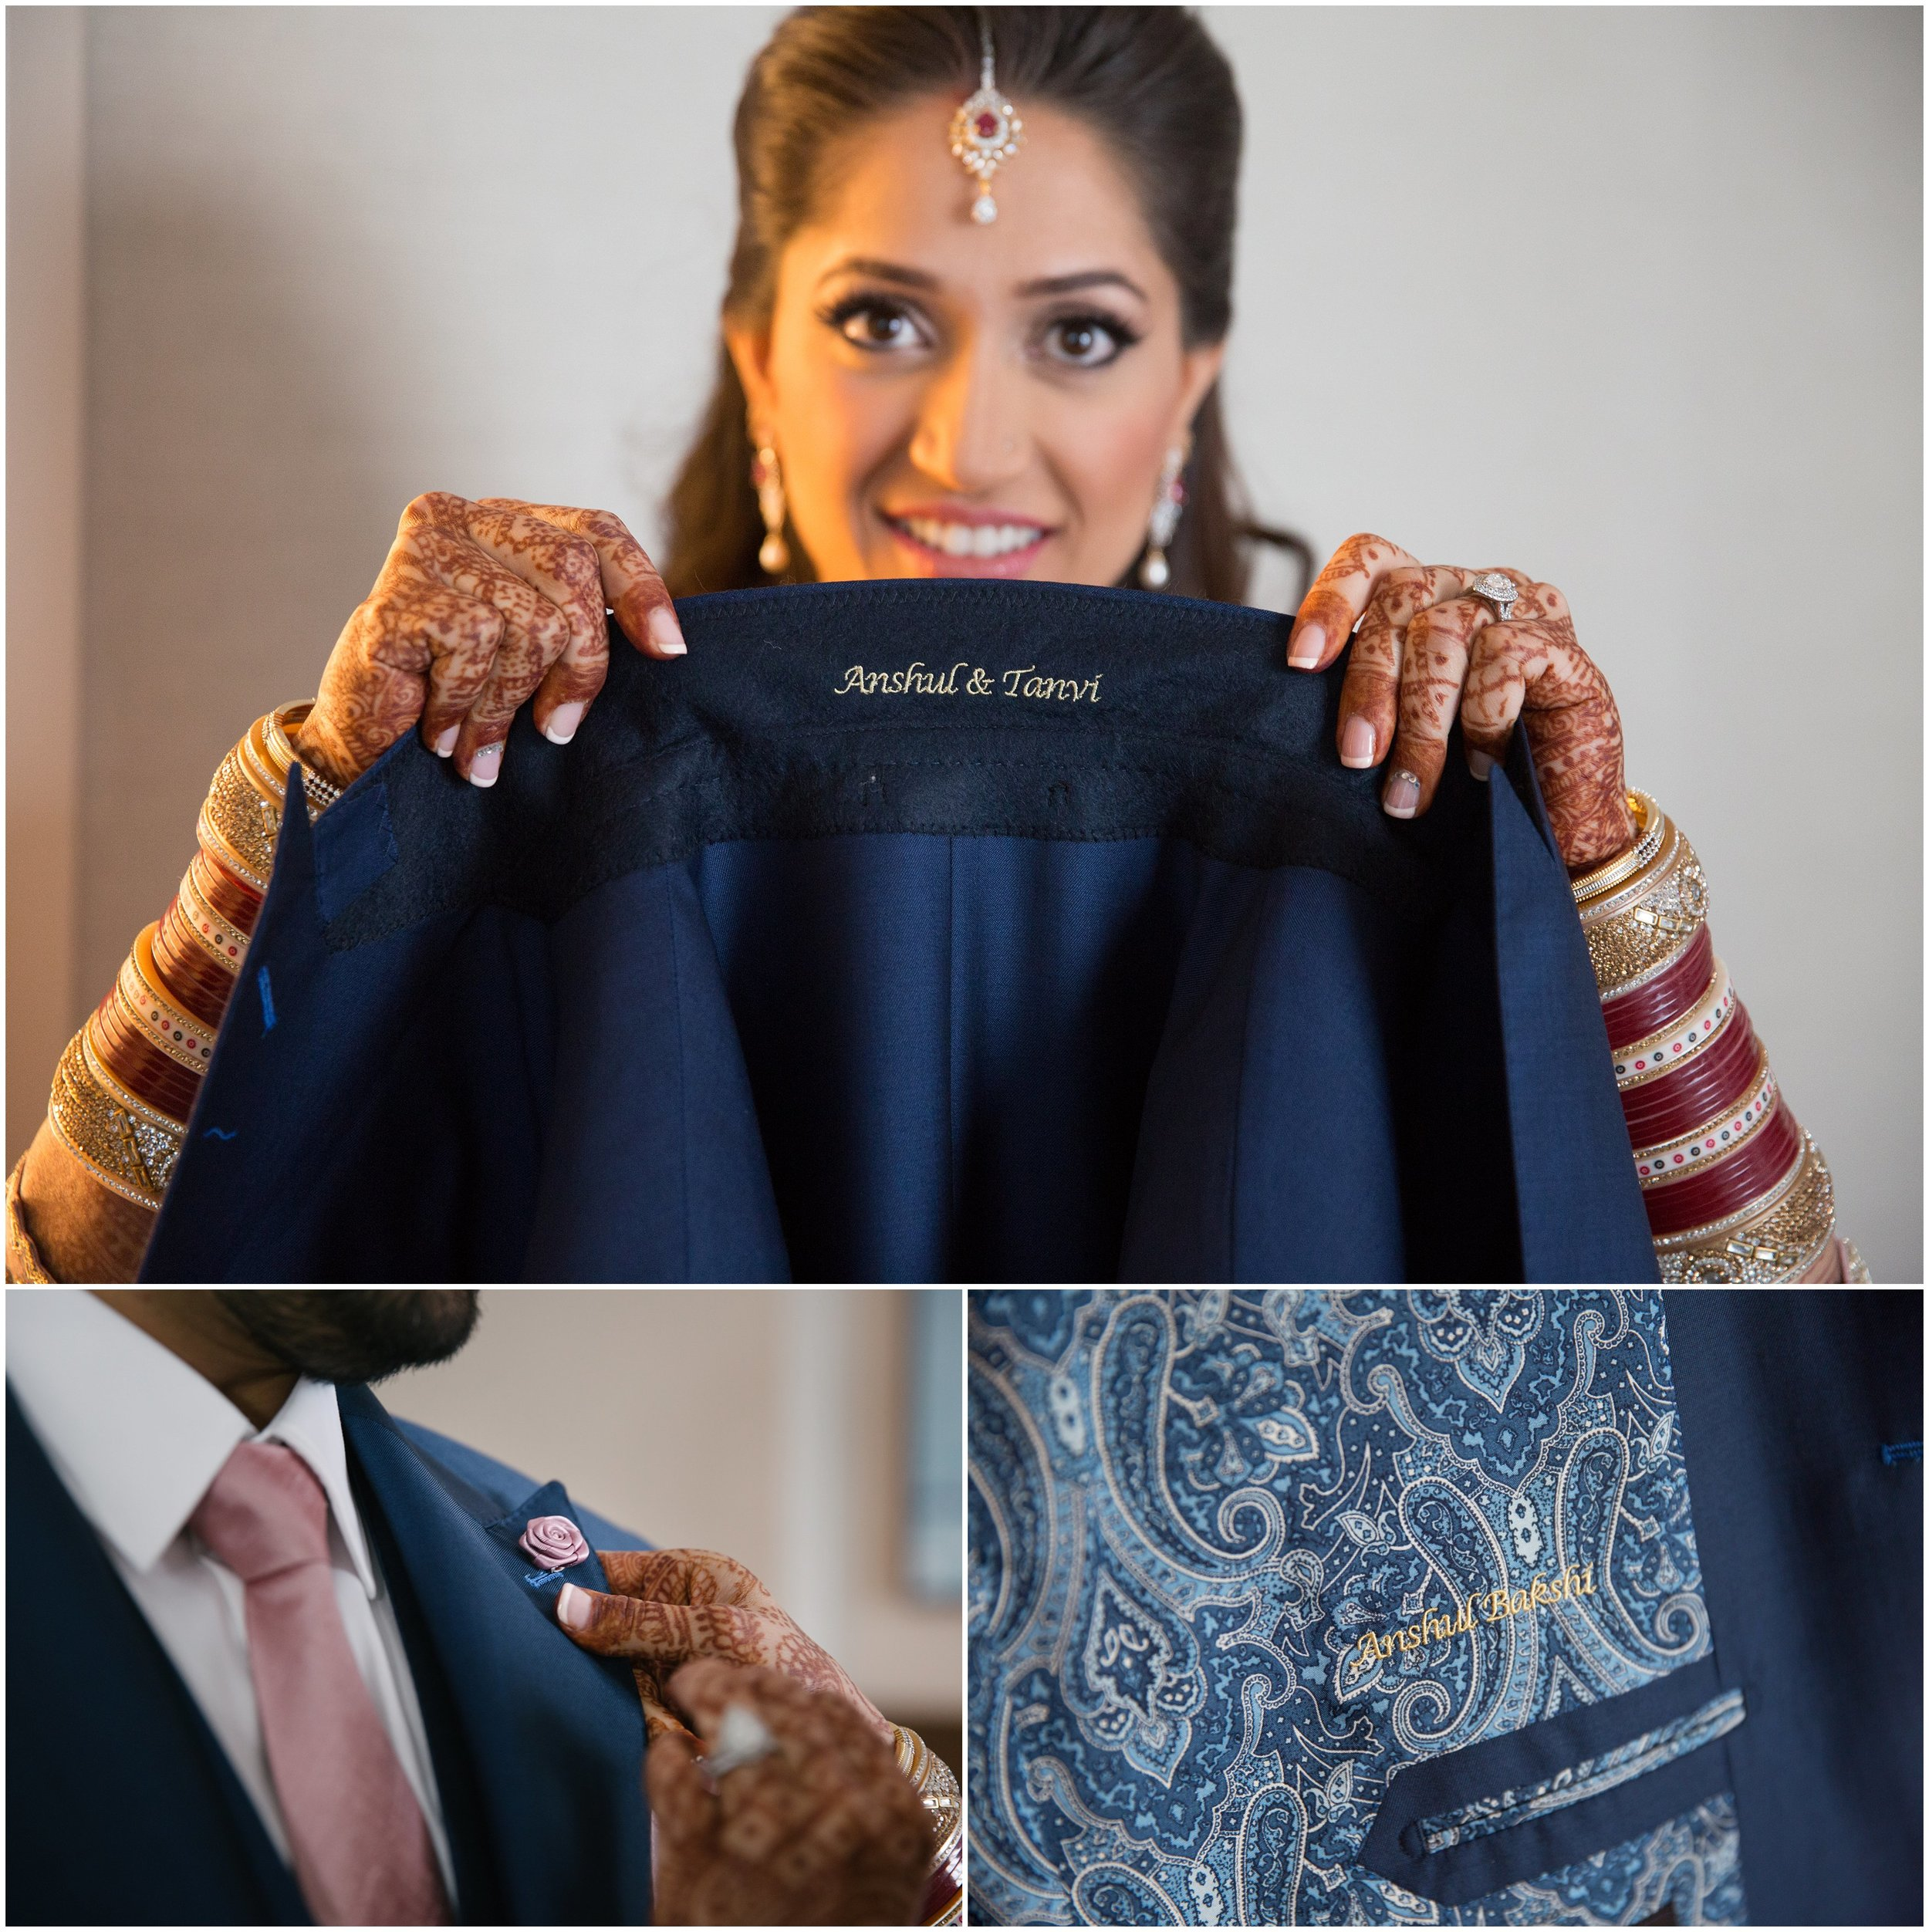 Le Cape Weddings - South Asian Wedding in Illinois - Tanvi and Anshul -1543_LuxuryDestinationPhotographer.jpg